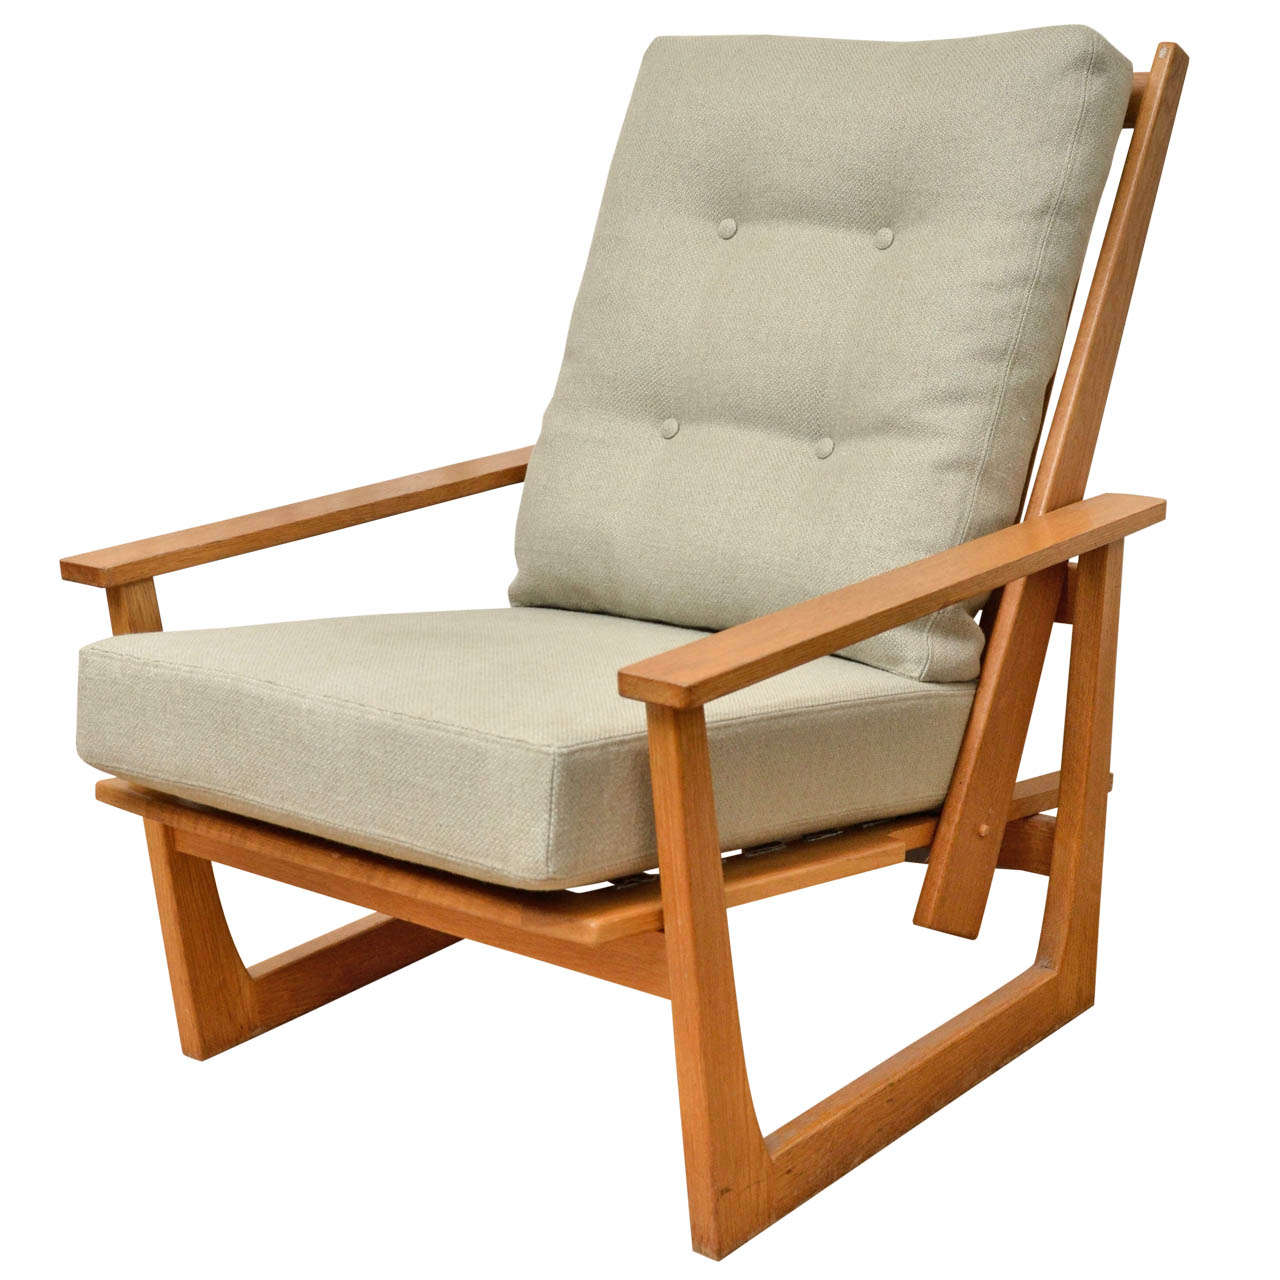 wooden lounge chair wheelchair transport zephyrhills reclining at 1stdibs for sale